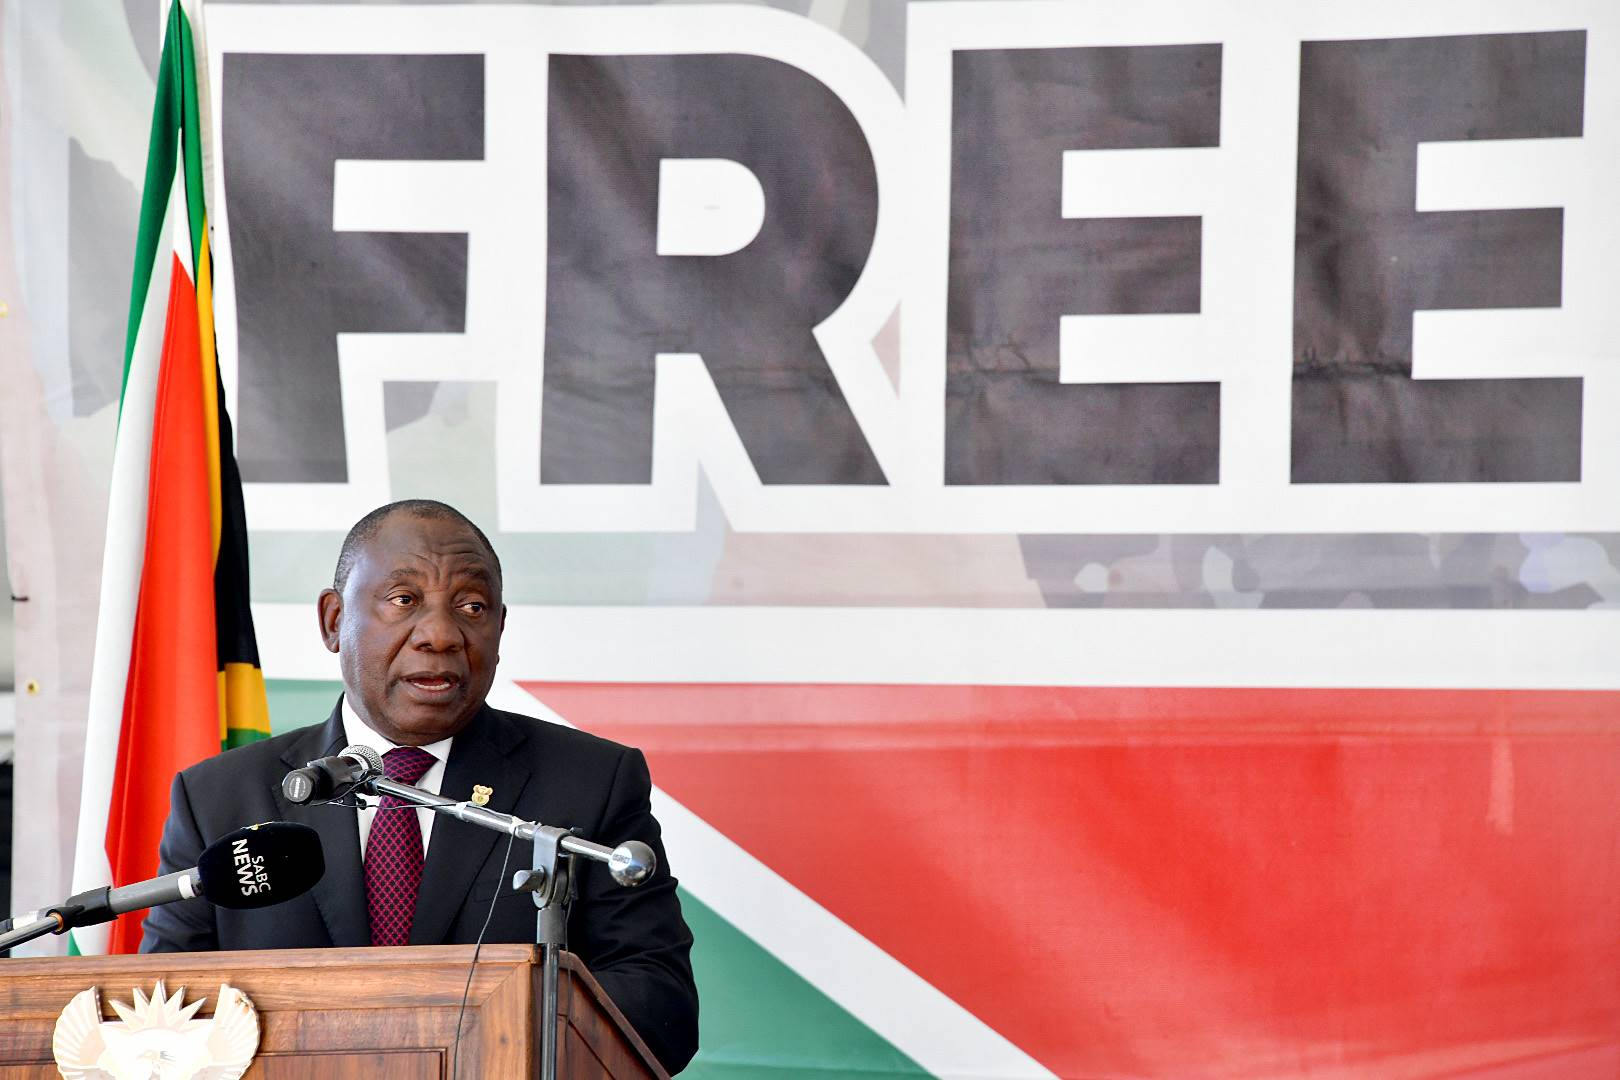 President Cyril Ramaphosa marked 25 years of freedom and democracy by delivering the keynote address at the Freedom Day national commemoration event in Makhanda, Eastern Cape